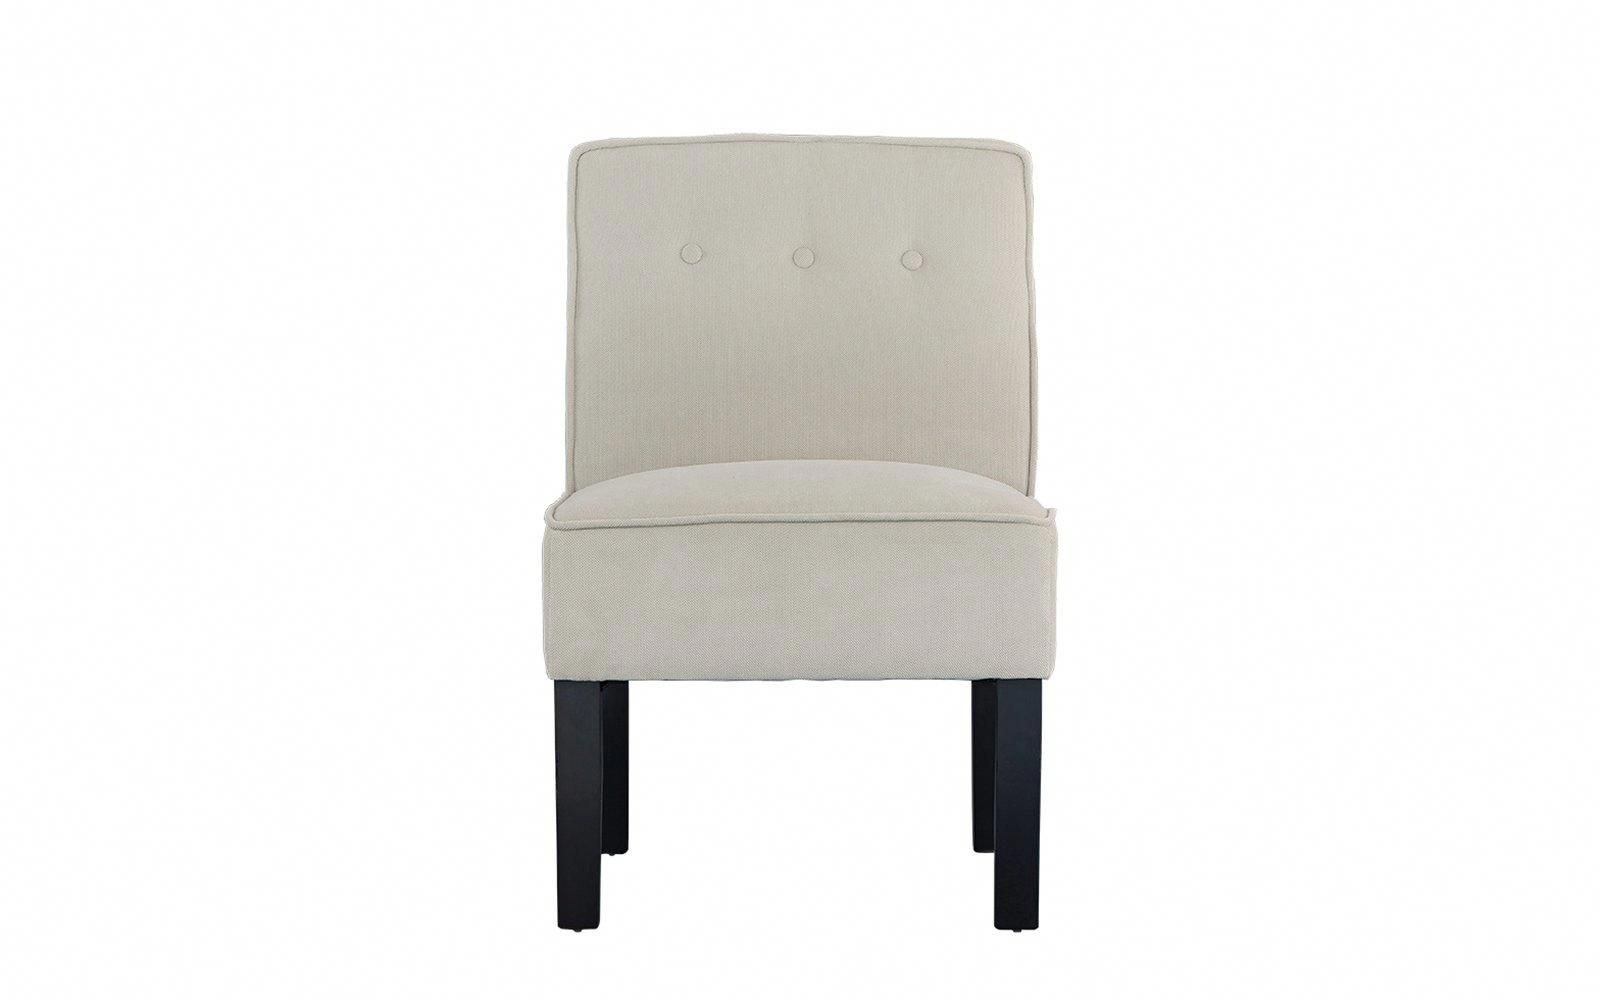 Ames Classic Armless Linen Accent Chair #ameschair | Oversized Chair With Regard To Ames Arm Sofa Chairs (View 13 of 20)